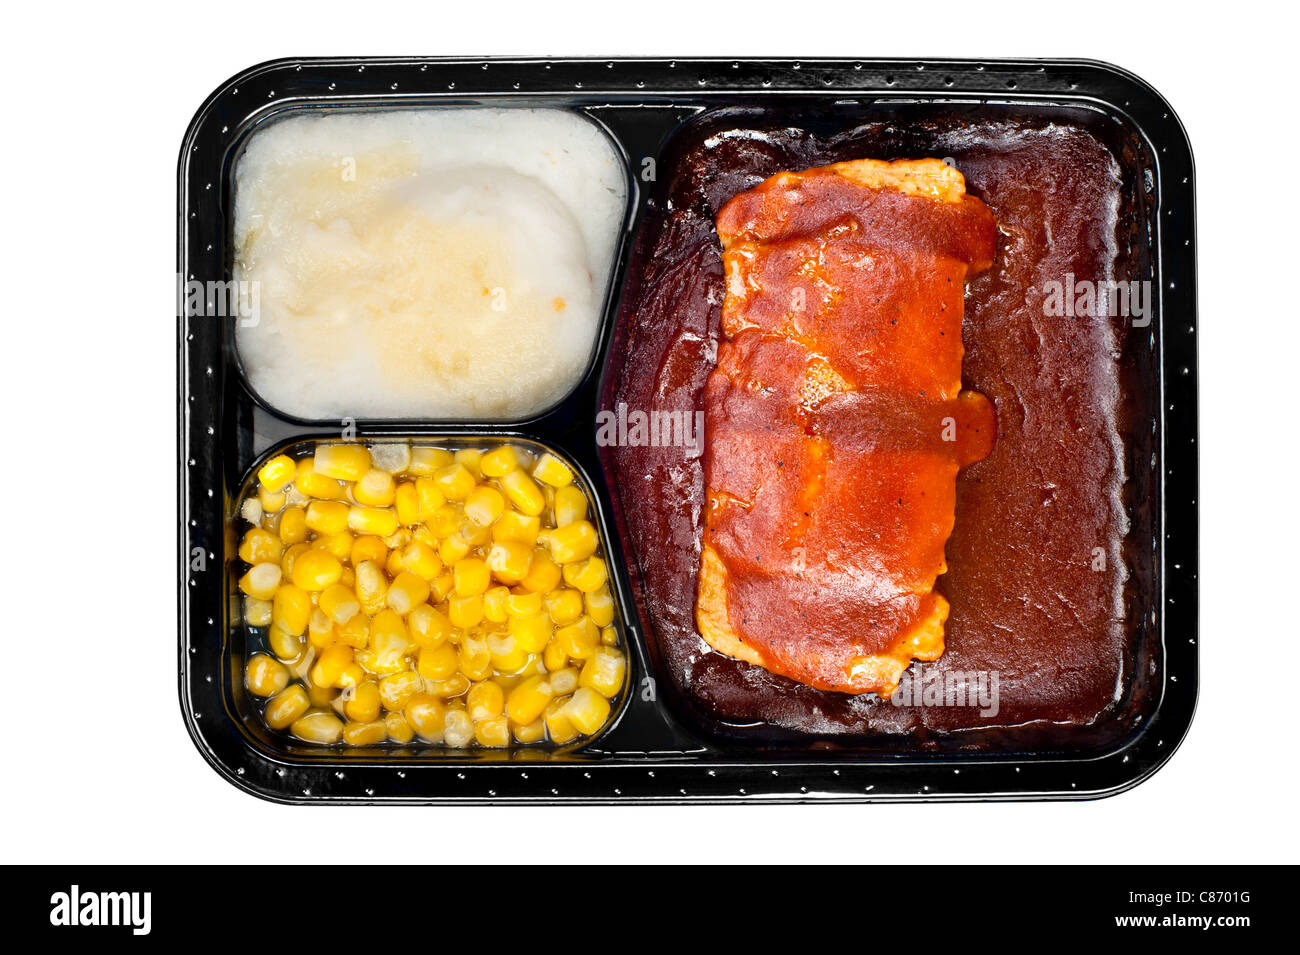 A TV dinner consisting of ribs, mashed potatoes and corn isolated on white - Stock Image